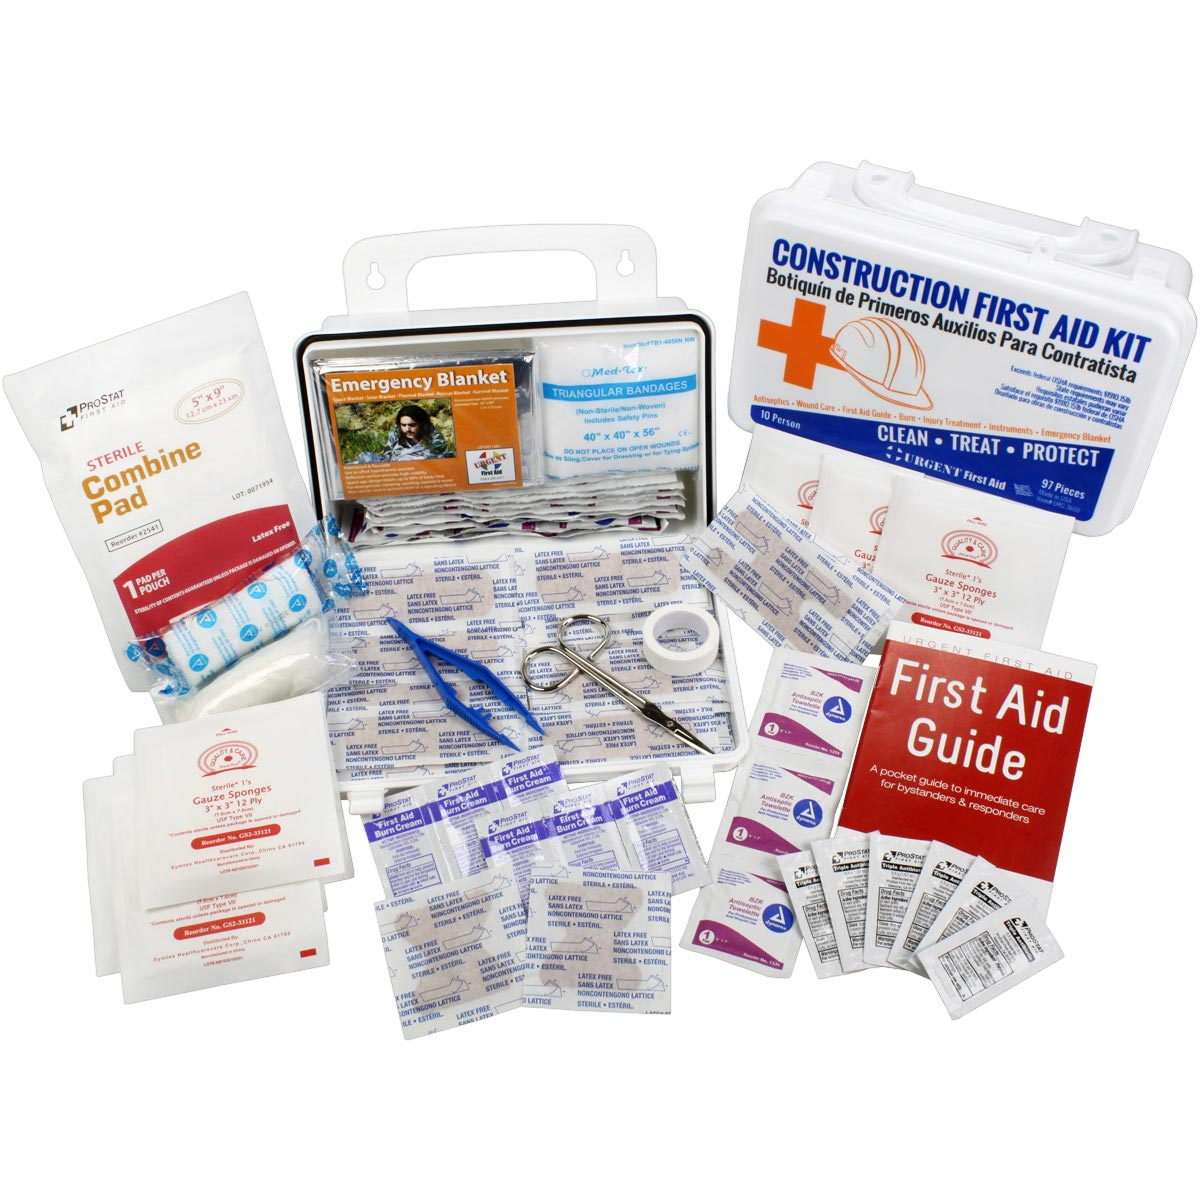 Bilingual OSHA Contractors First Aid Kit for Job Sites up to 10 People – Gasketed Plastic, 97 pieces